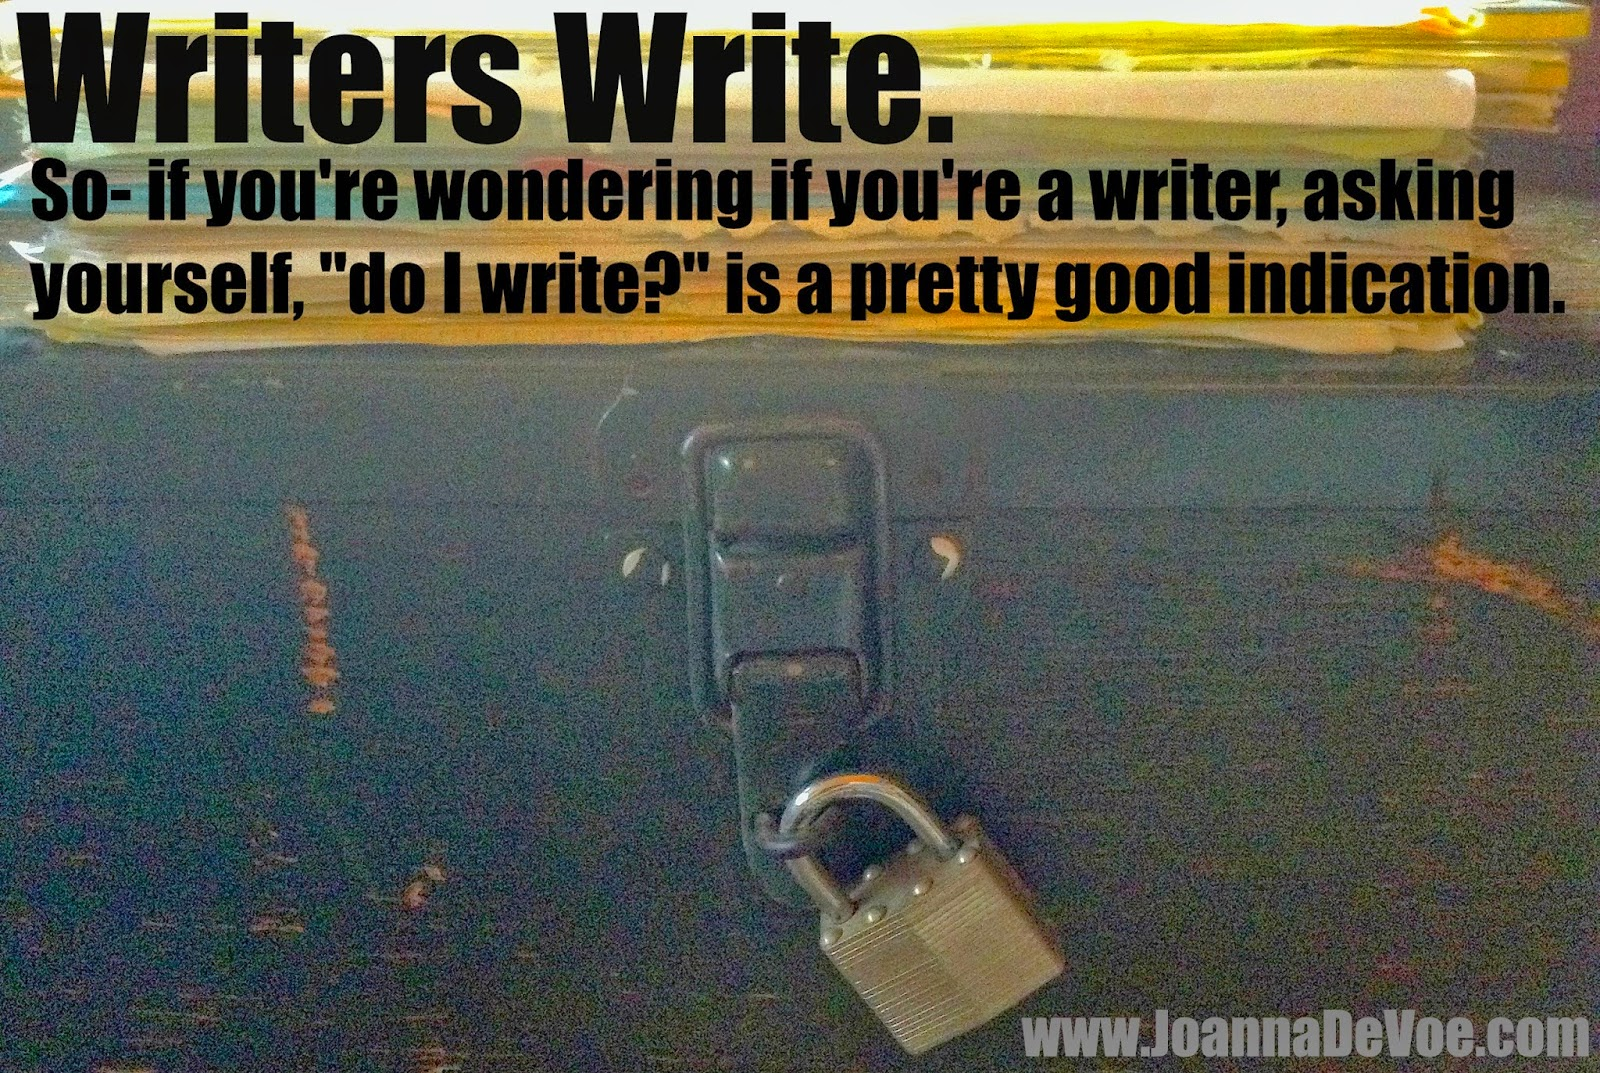 Why do I suddenly suck at writing?